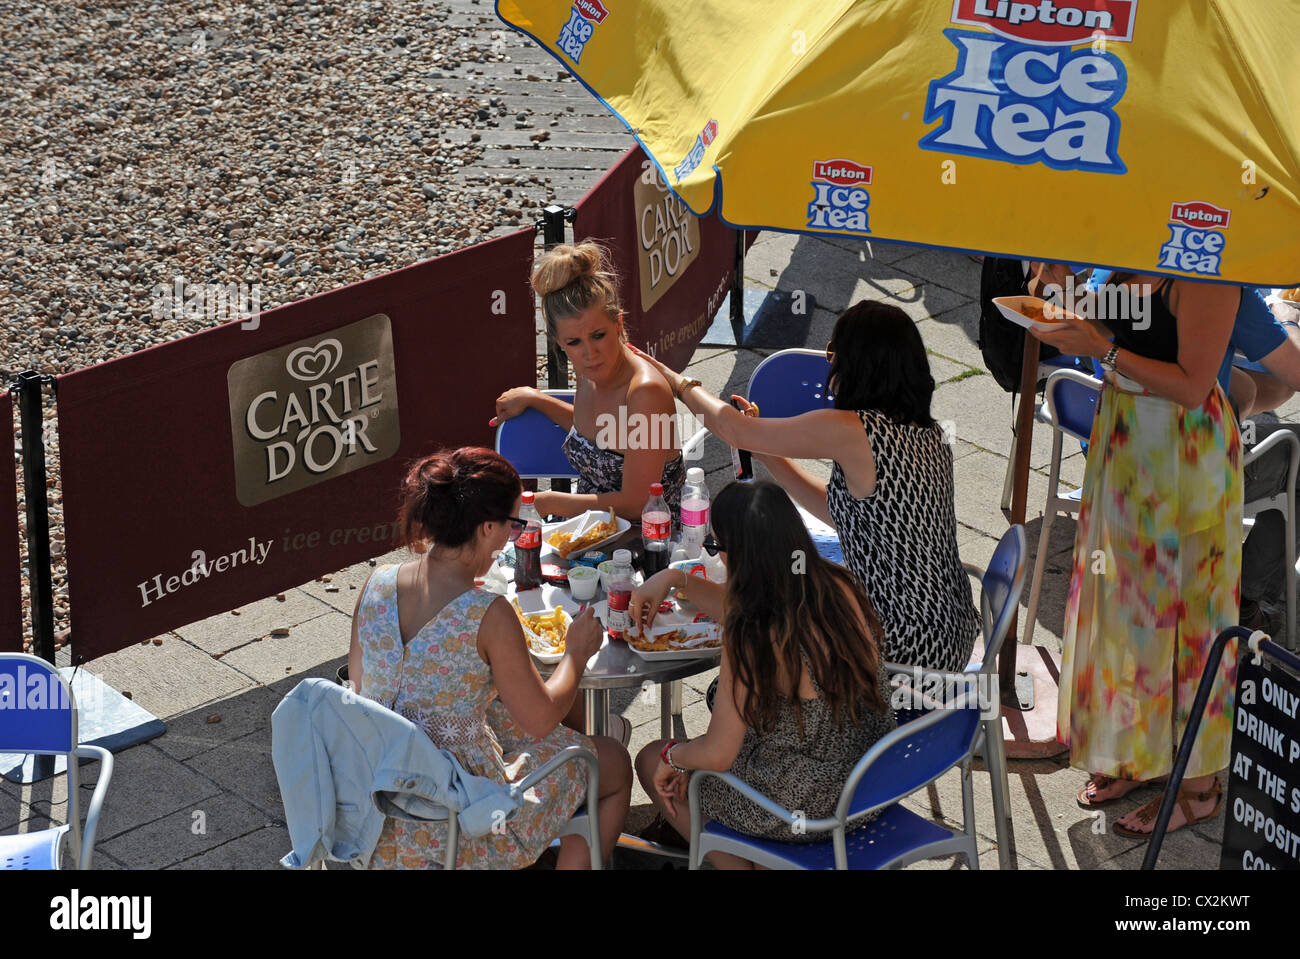 Young woman applying suncream to a friends back Brighton UK 2012 - Stock Image